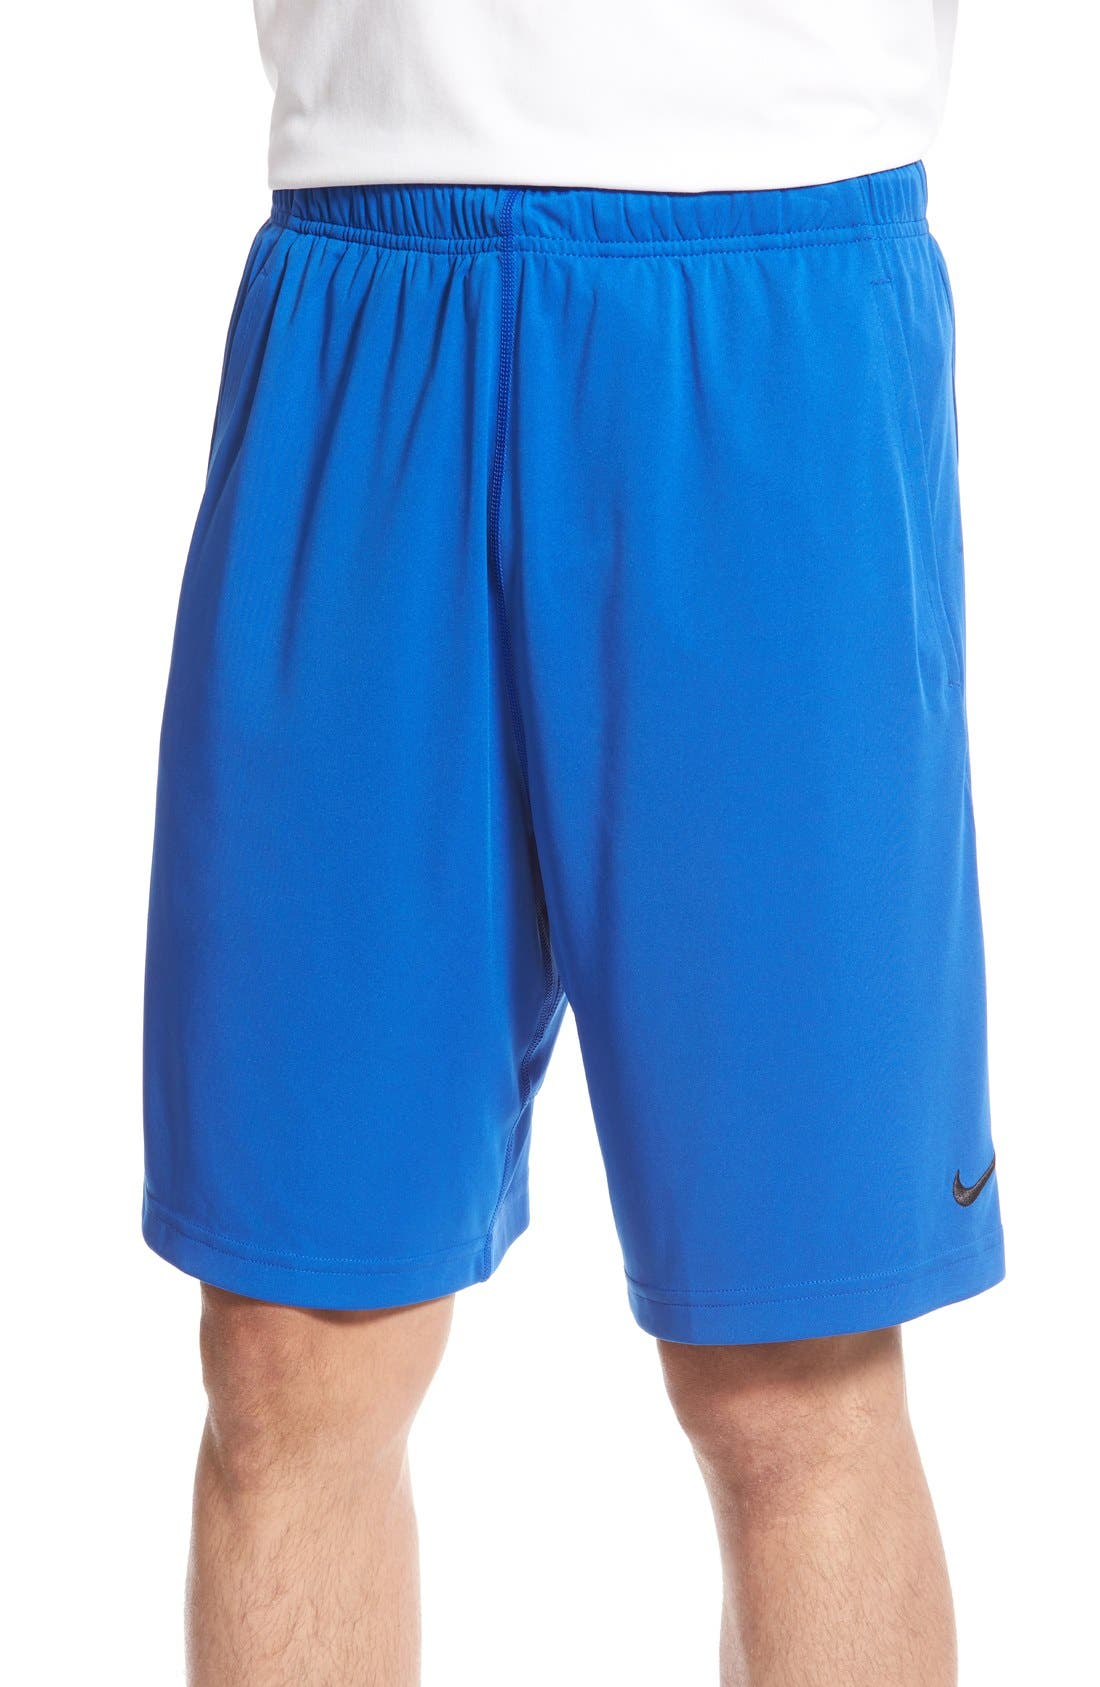 'Fly' Dri-FIT Training Shorts,                             Main thumbnail 22, color,